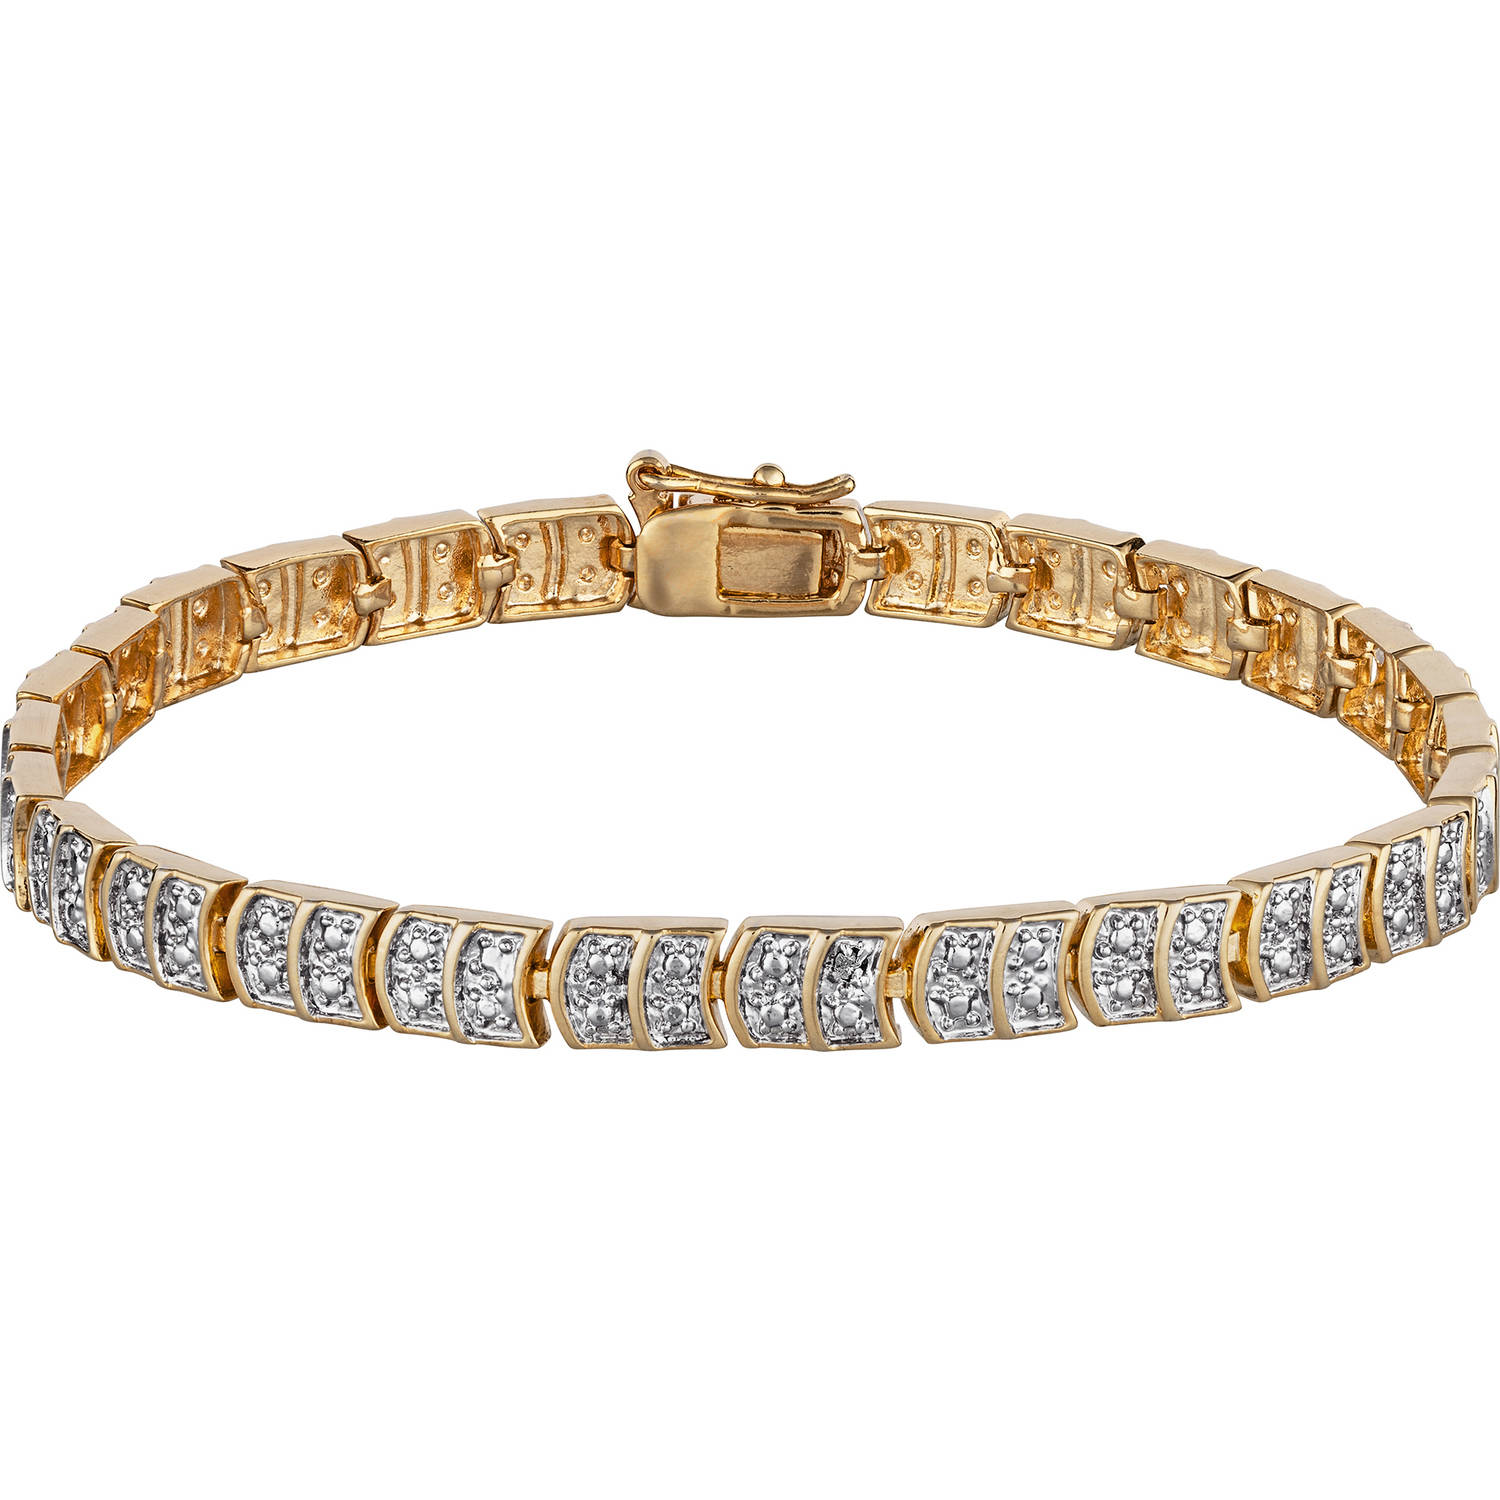 Diamond Accent 14kt Gold-Plated Tennis Bracelet, 8""